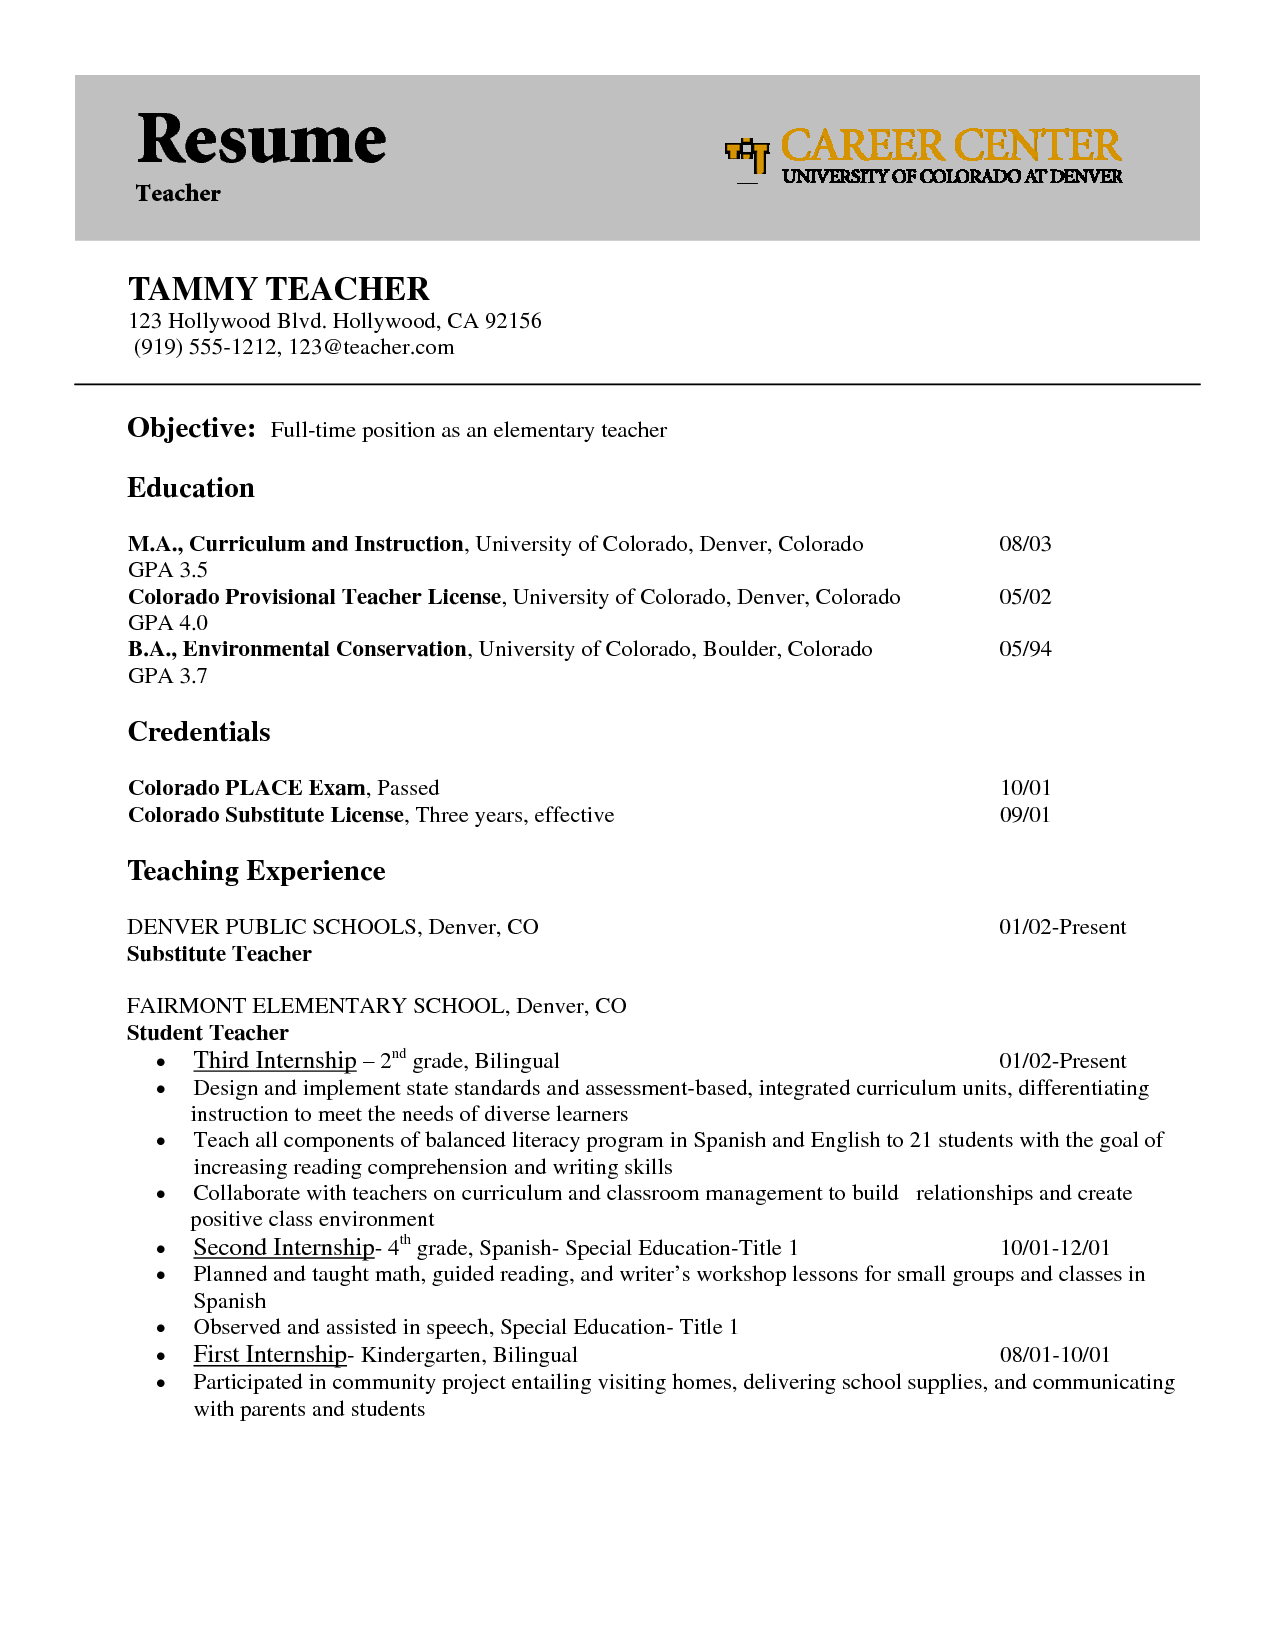 Objective For Teaching Resume Fair Teacher Cover Letters With Experiencejob Hunting Write A Great Review